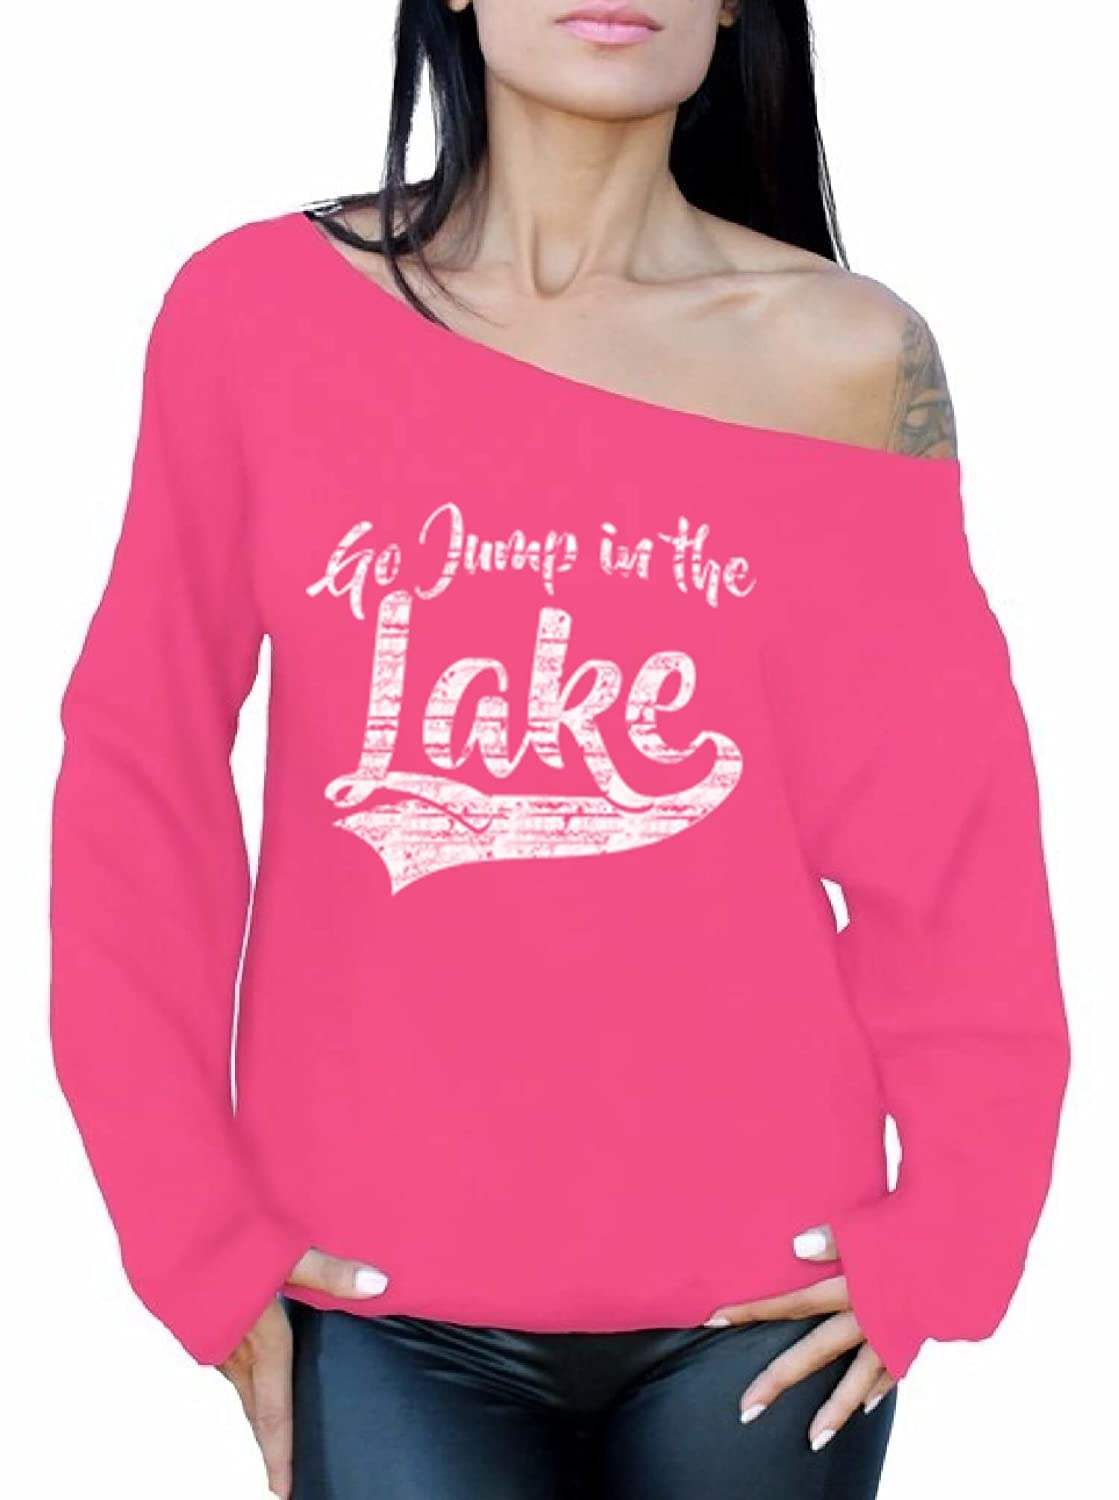 Awkward Styles Womens Go Jump in The Lake Hilarious Off The Shoulder Tops for Women Sweatshirts White